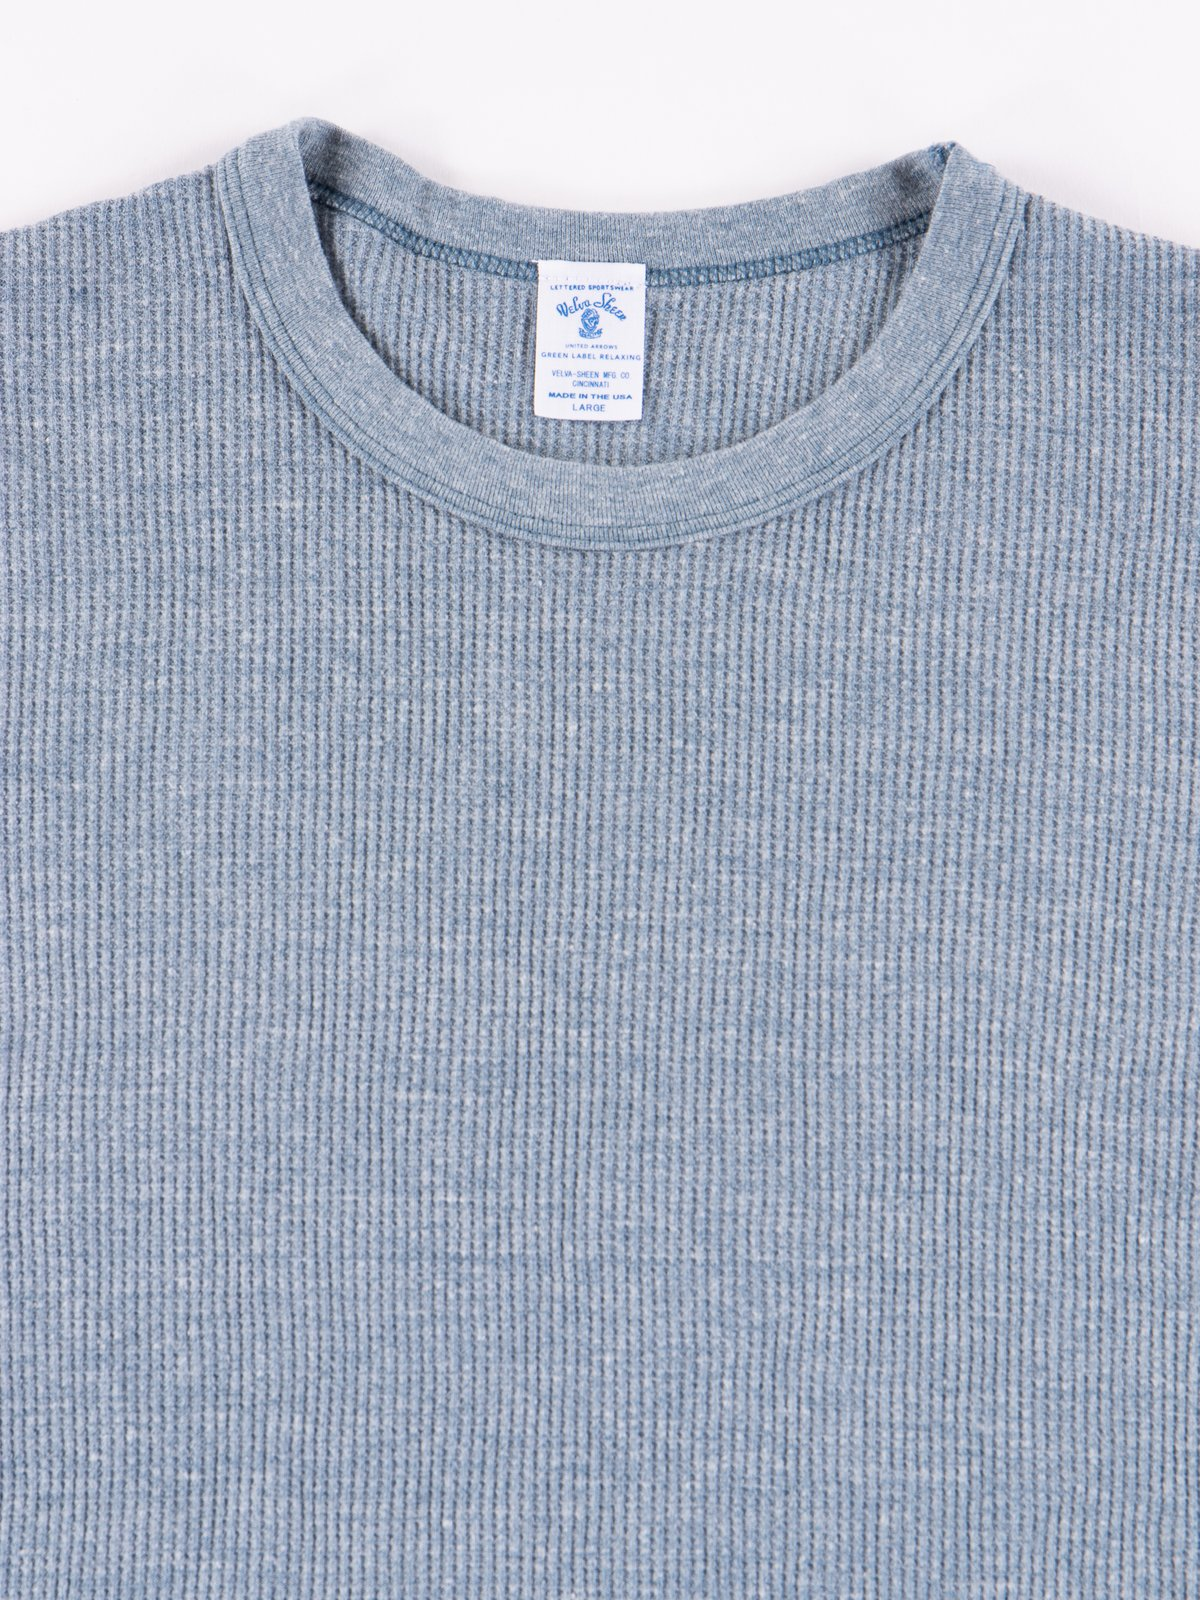 Heather Blue Tri Thermal T–Shirt - Image 2